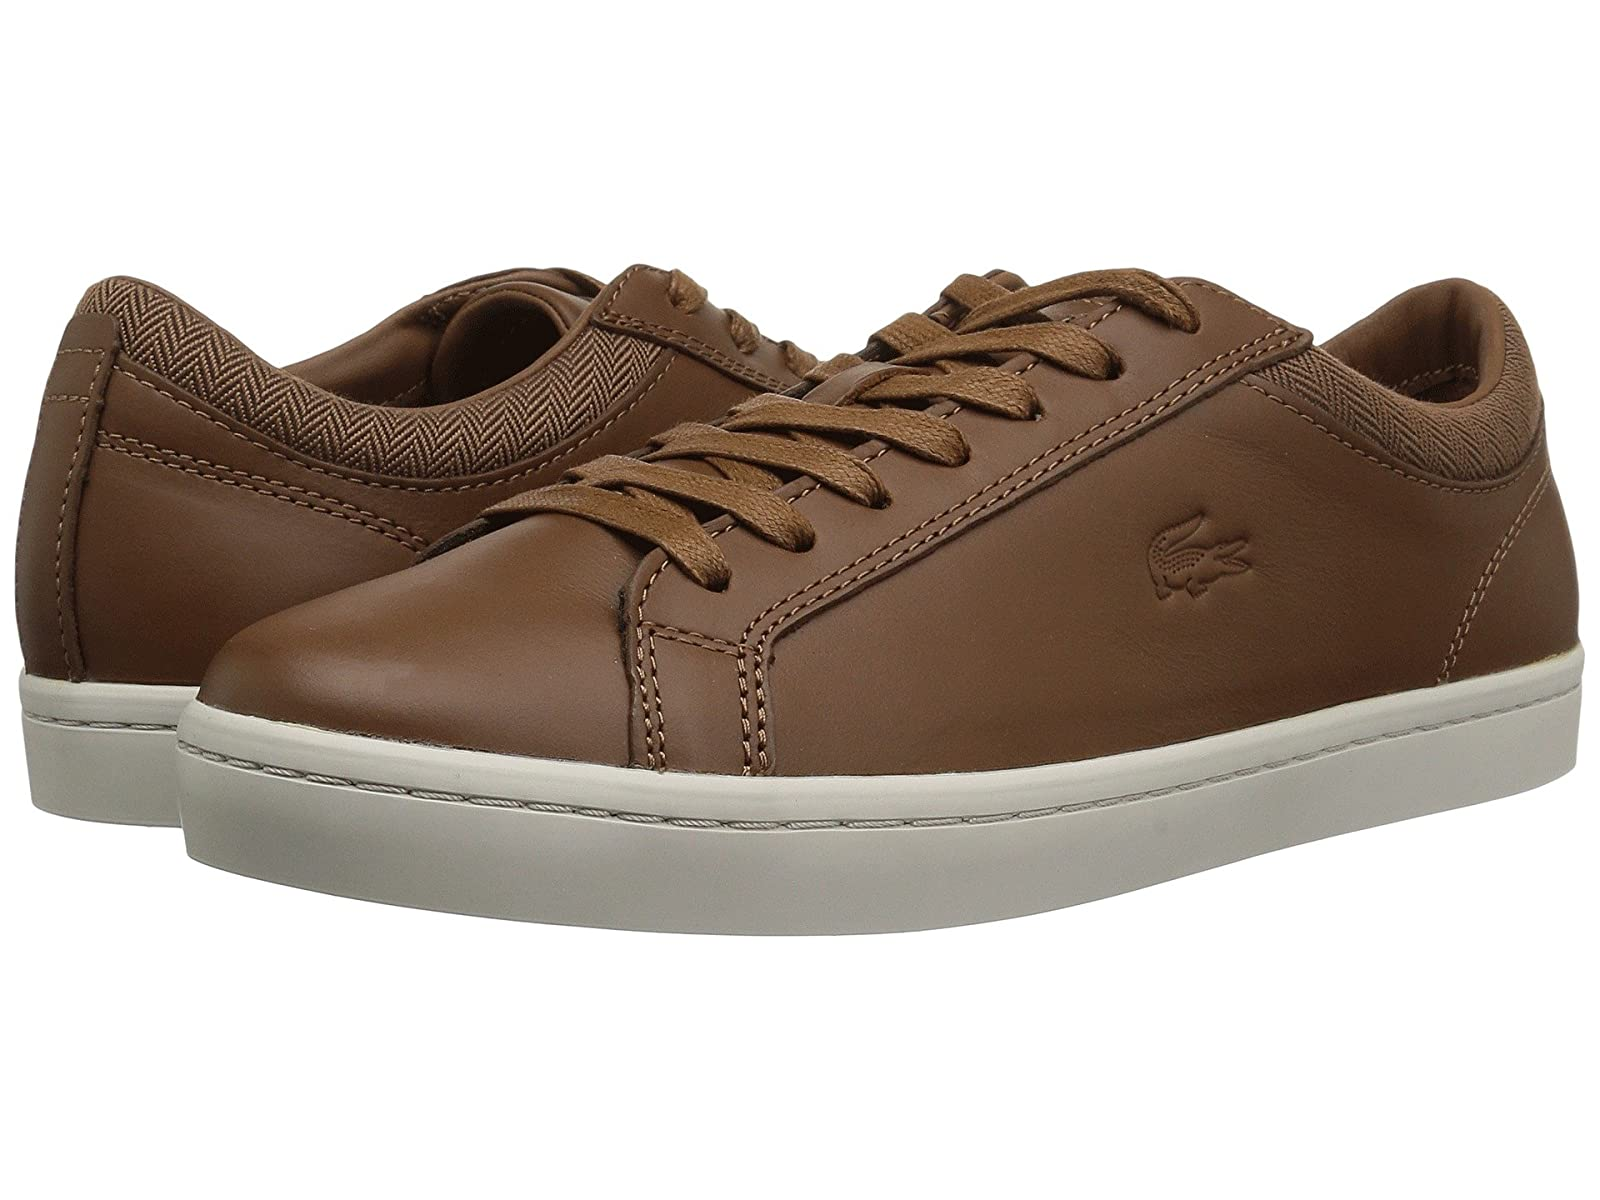 Lacoste Straightset 417 1 CamCheap and distinctive eye-catching shoes